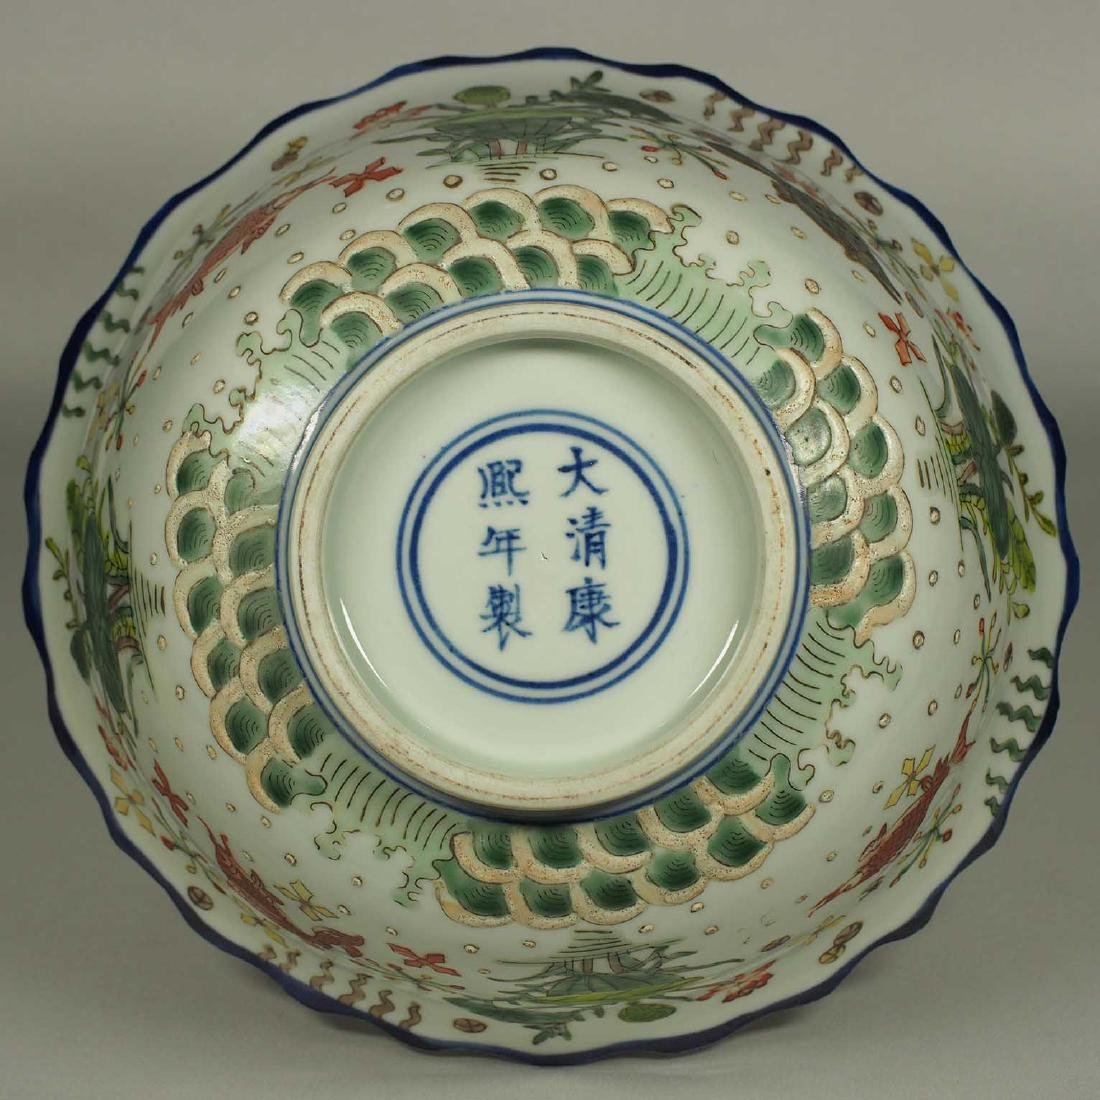 Lobed-Rim Bowl with Fishes in Pond, Kangxi Mark, late - 6